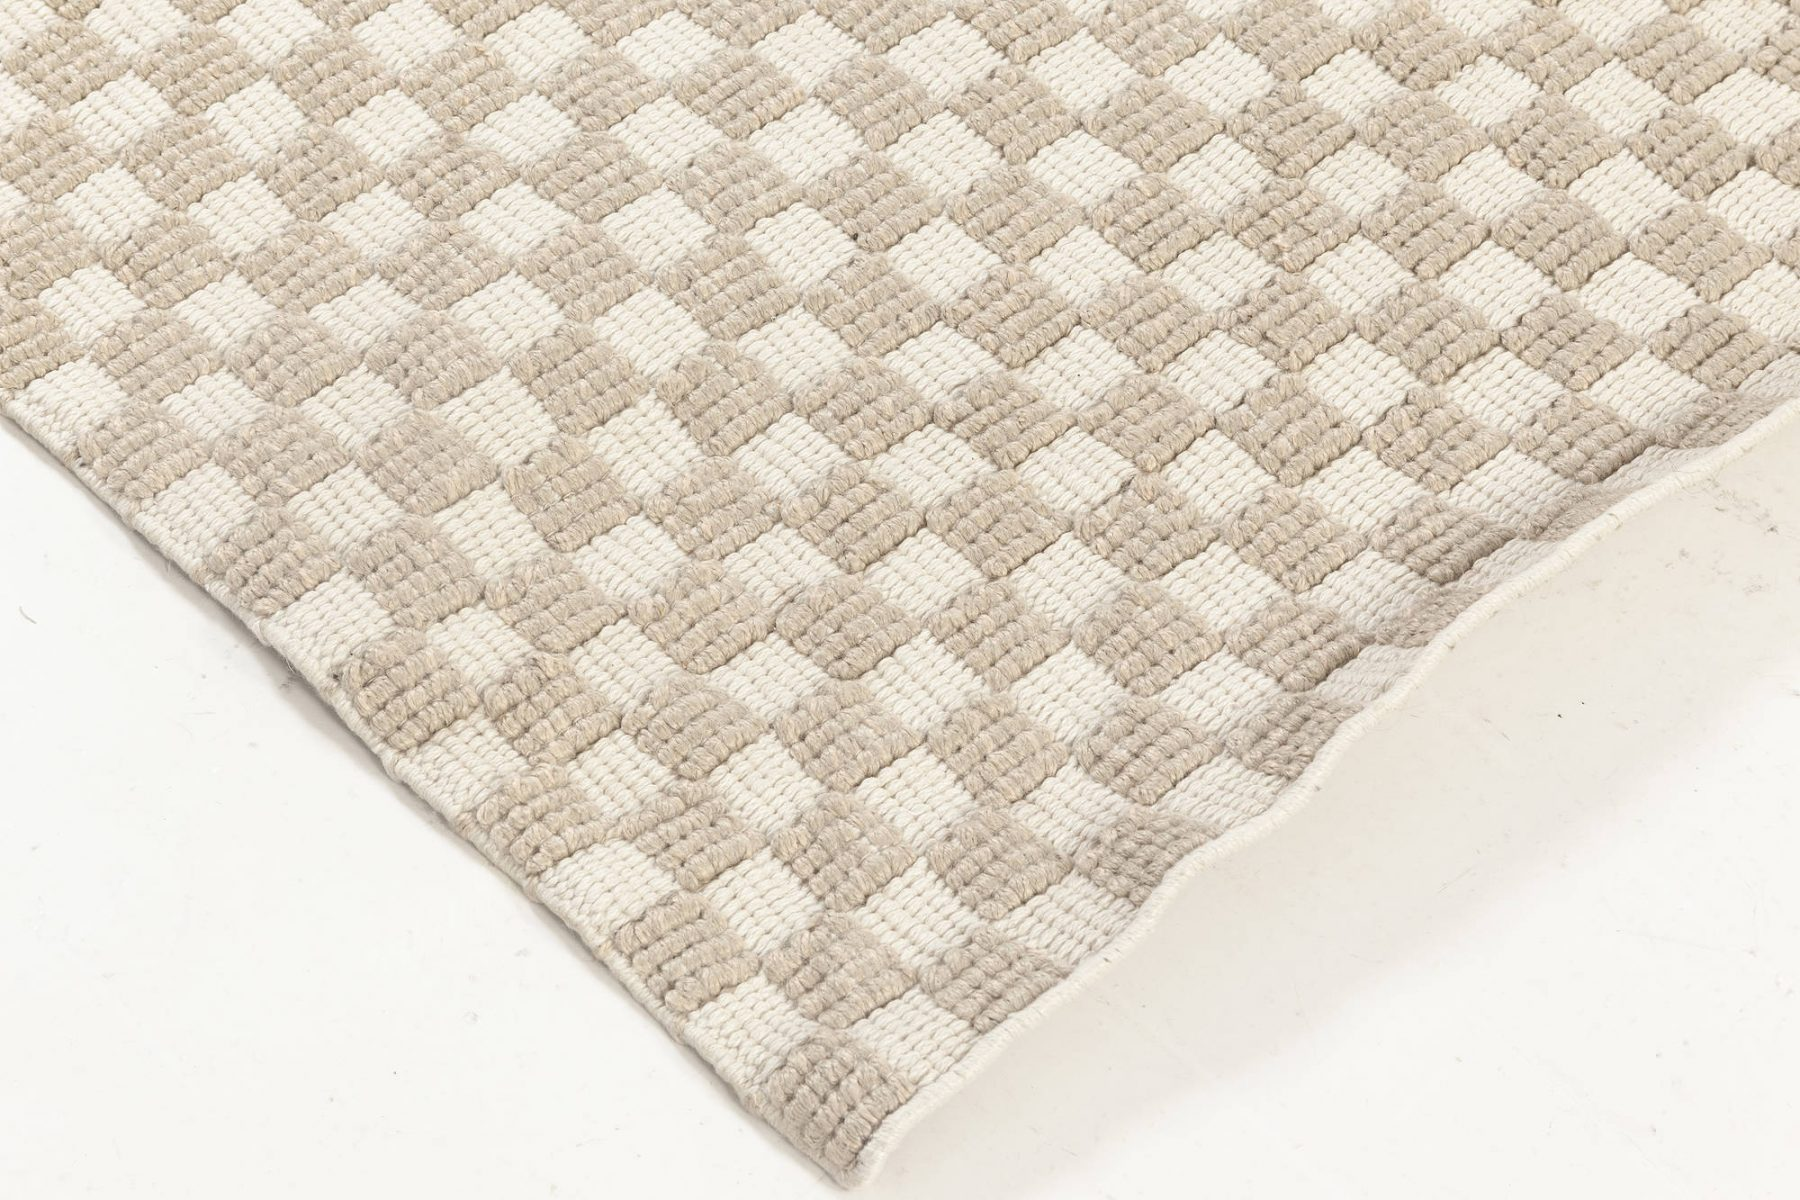 New Swedish Inspired Indoor Outdoor Geometric Beige and White Wool Rug N11953